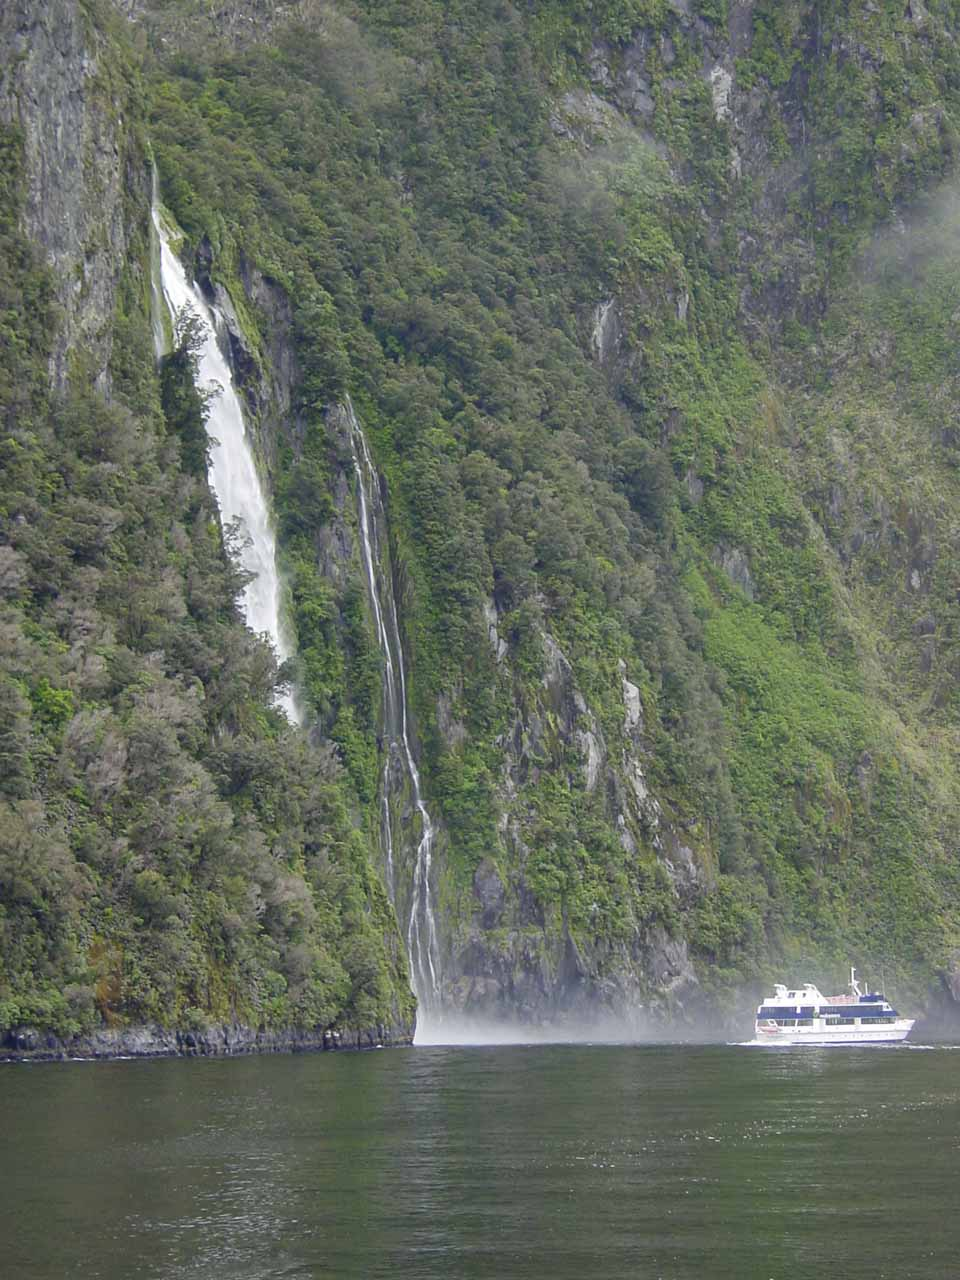 A cruise vessel in front of us was just done going beneath Stirling Falls